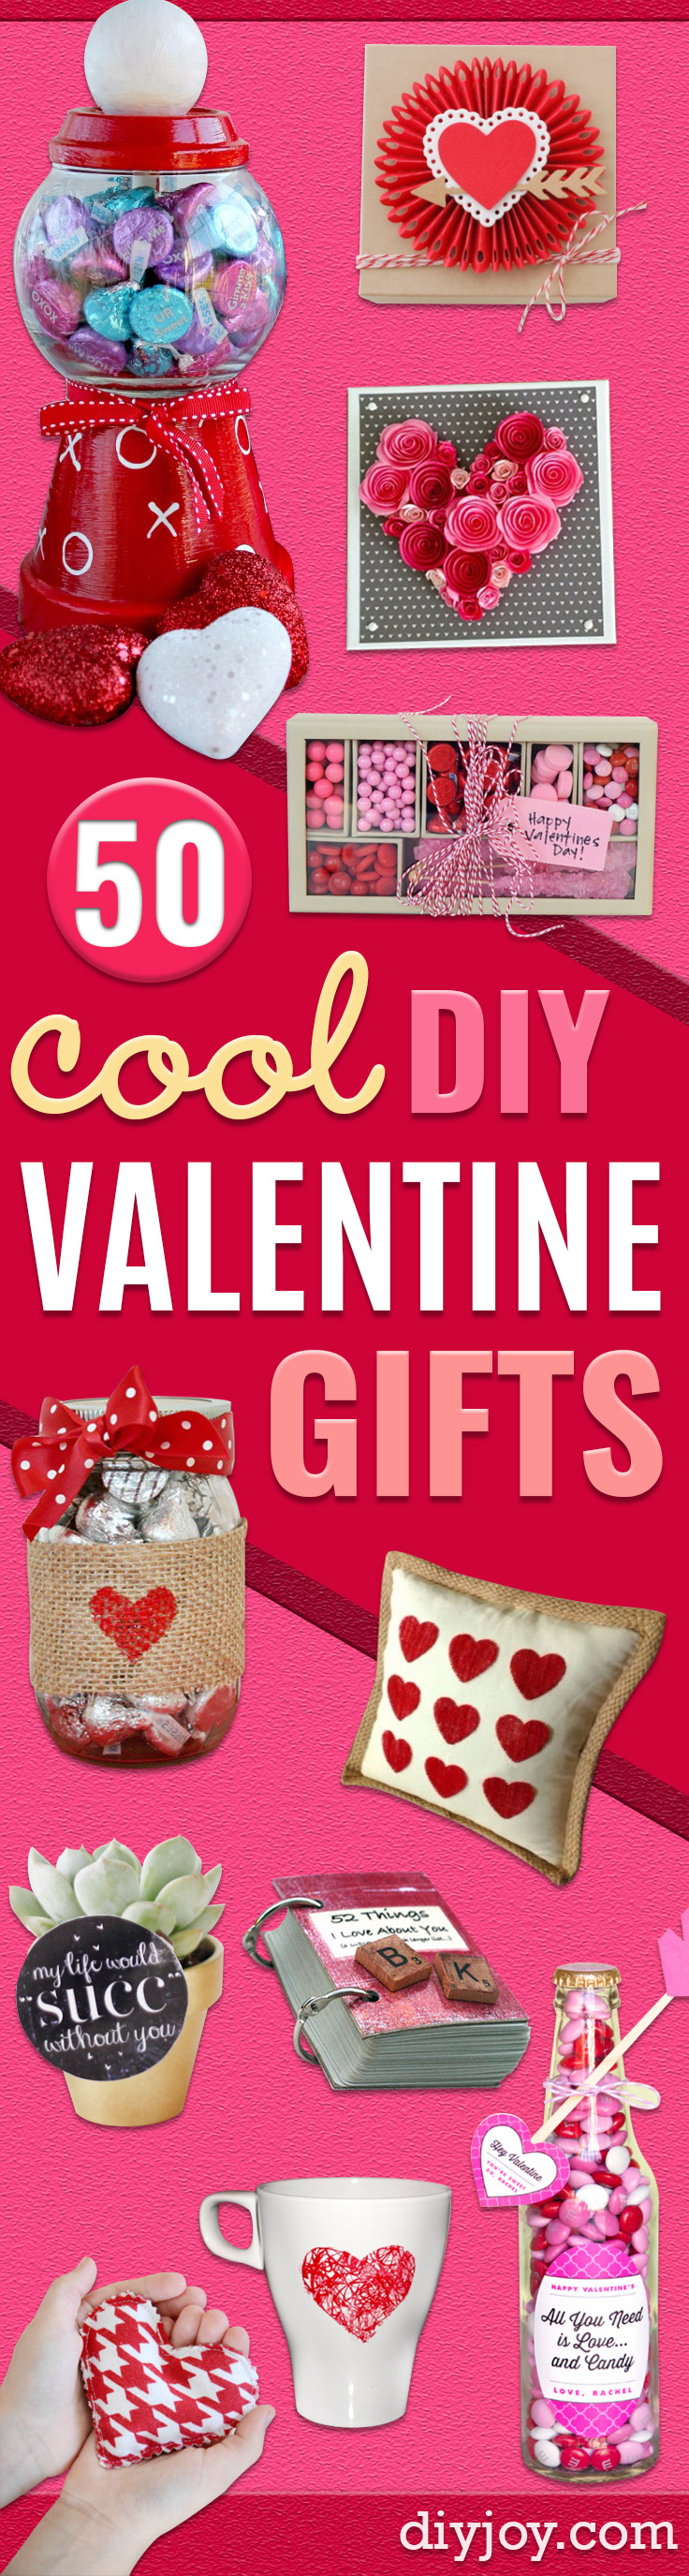 Best DIY Valentines Day Gifts - Cute Mason Jar Valentines Day Gifts and Crafts for Him and Her | Boyfriend, Girlfriend, Mom and Dad, Husband or Wife, Friends - Easy DIY Ideas for Valentines Day for Homemade Gift Giving and Room Decor |  Creative Home Decor and Craft Projects for Teens, Teenagers, Kids and Adults http://diyjoy.com/diy-valentines-day-gift-ideas